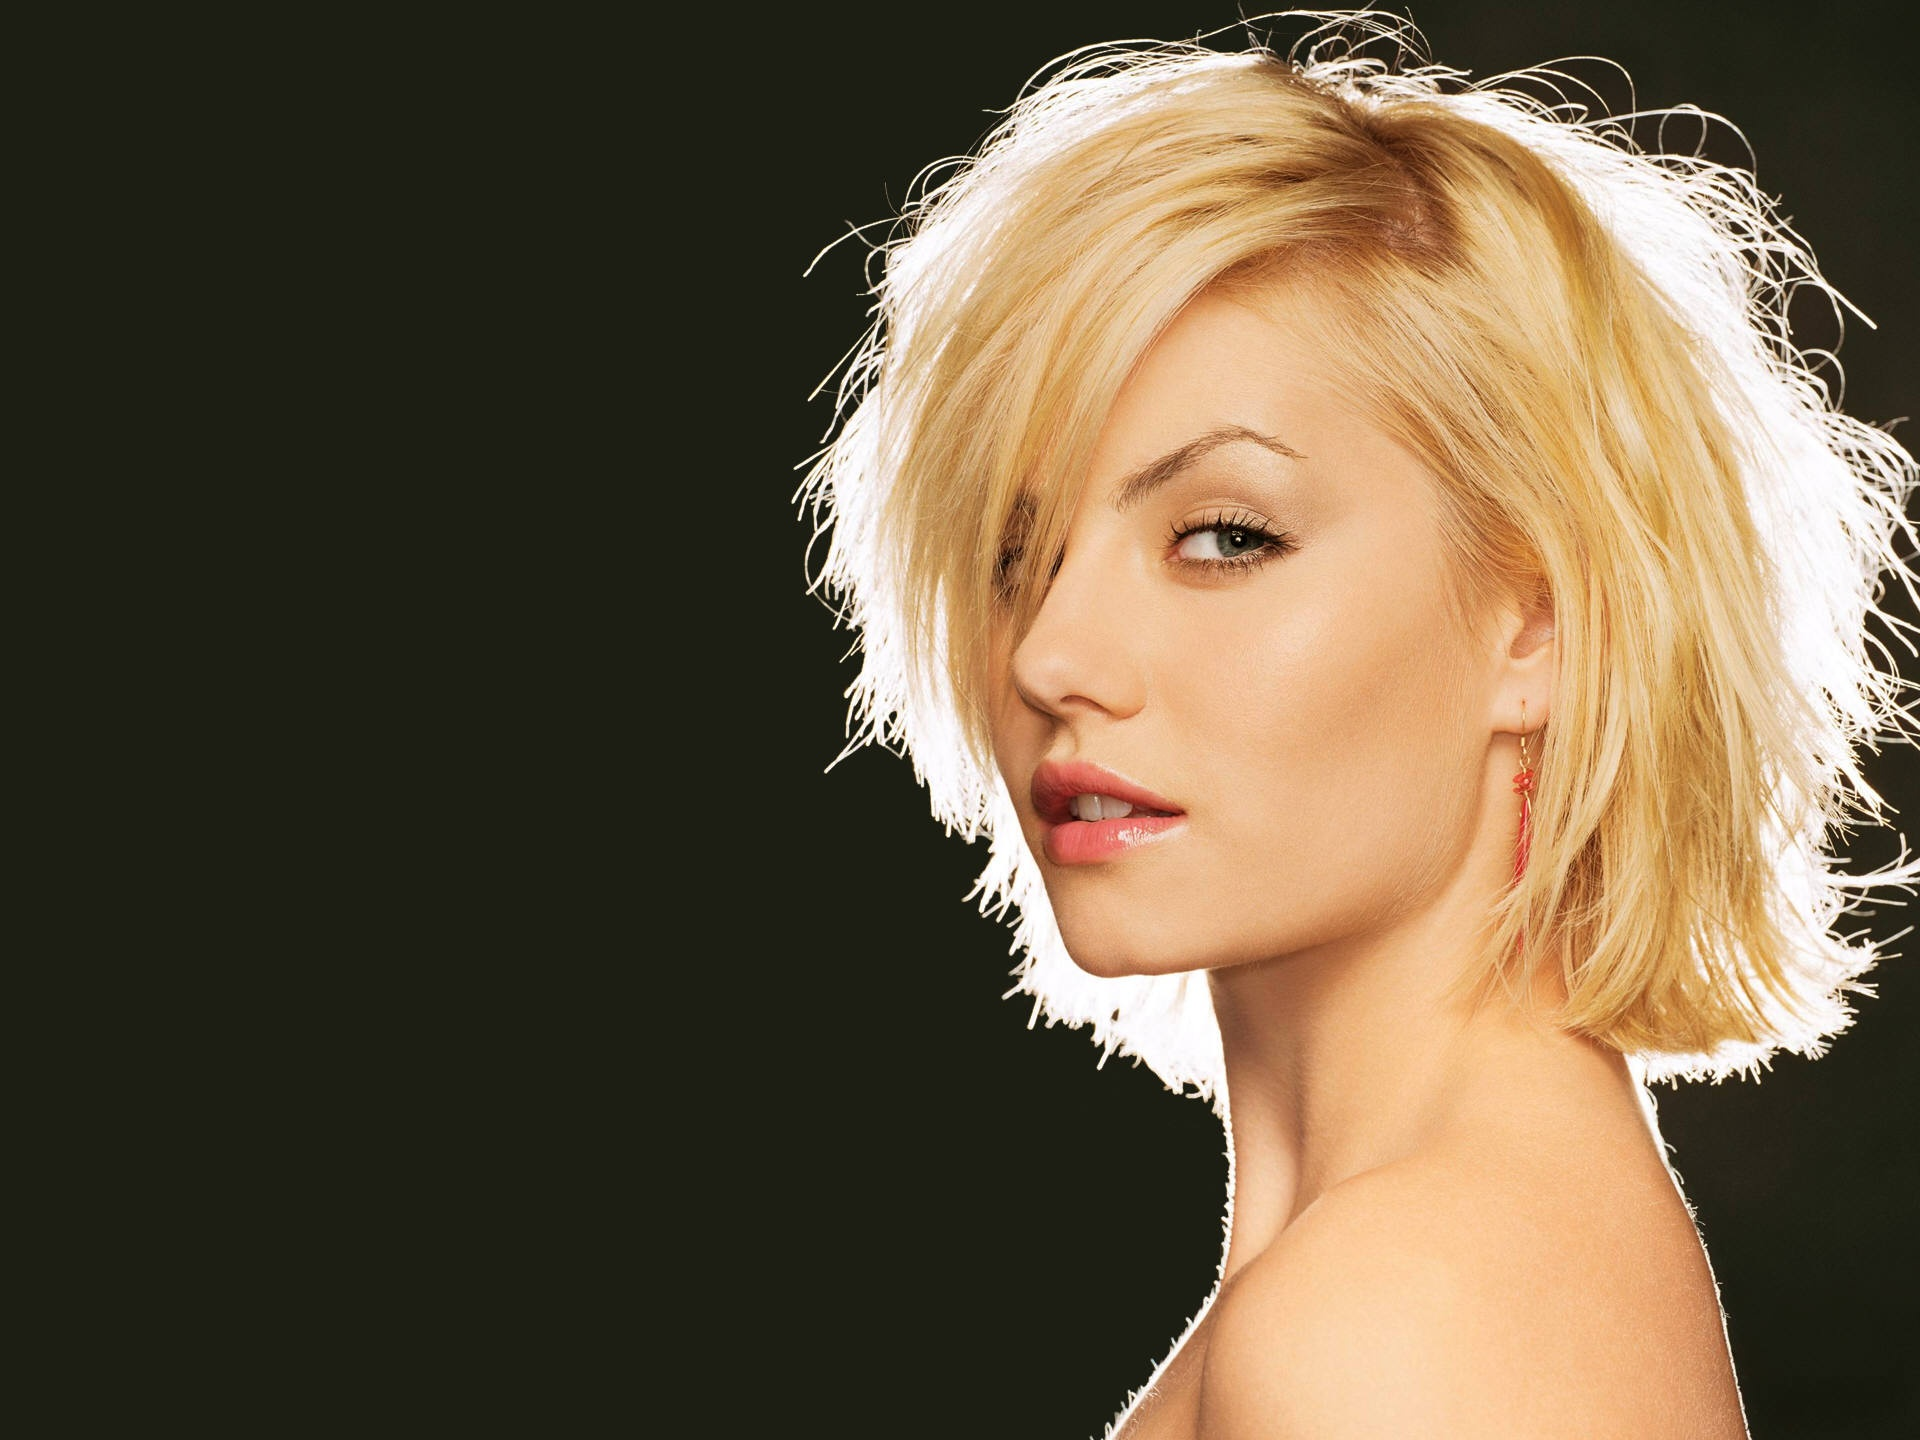 Elisha Cuthbert Hd Wallpapers: Elisha Cuthbert Wallpapers High Resolution And Quality